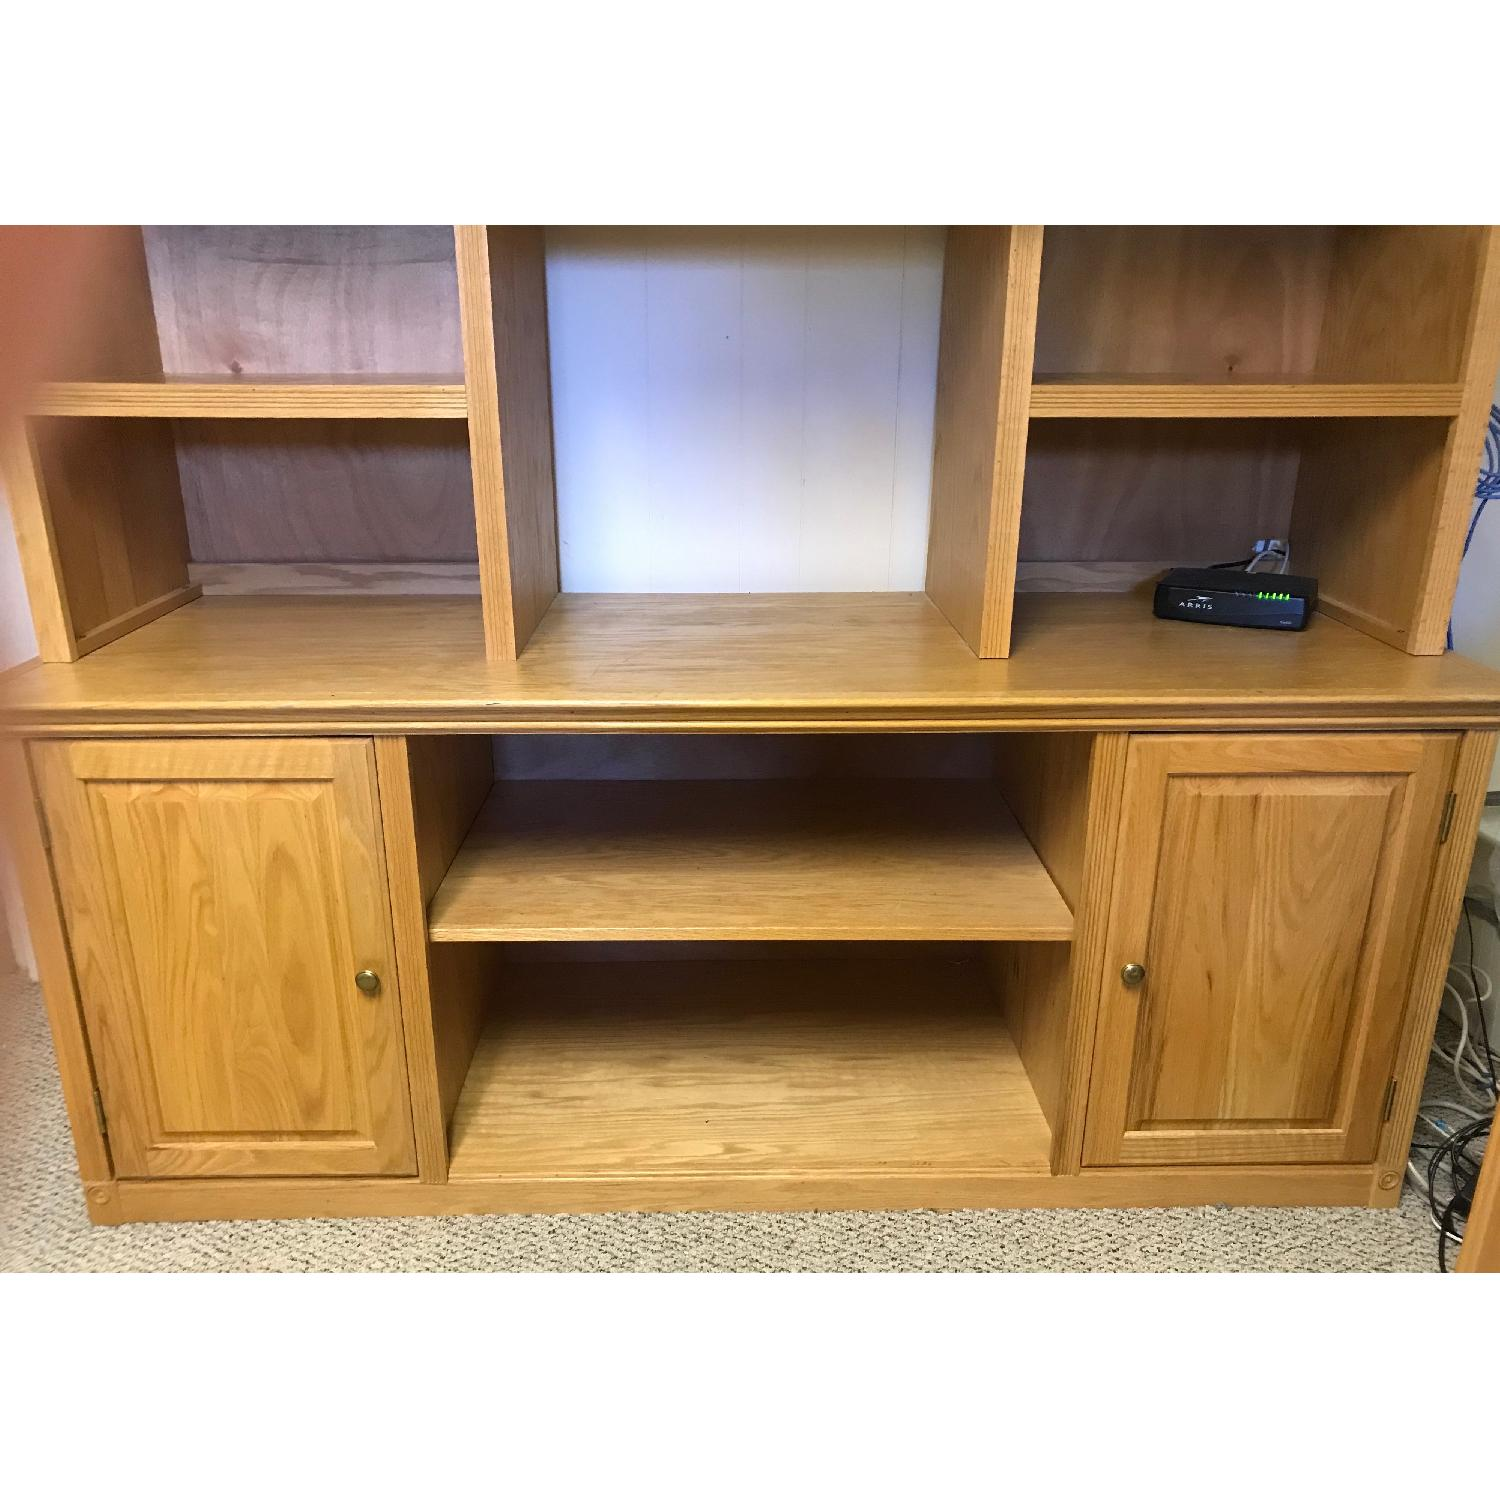 3-Piece Wood Bookcase in Oak Finish - image-3